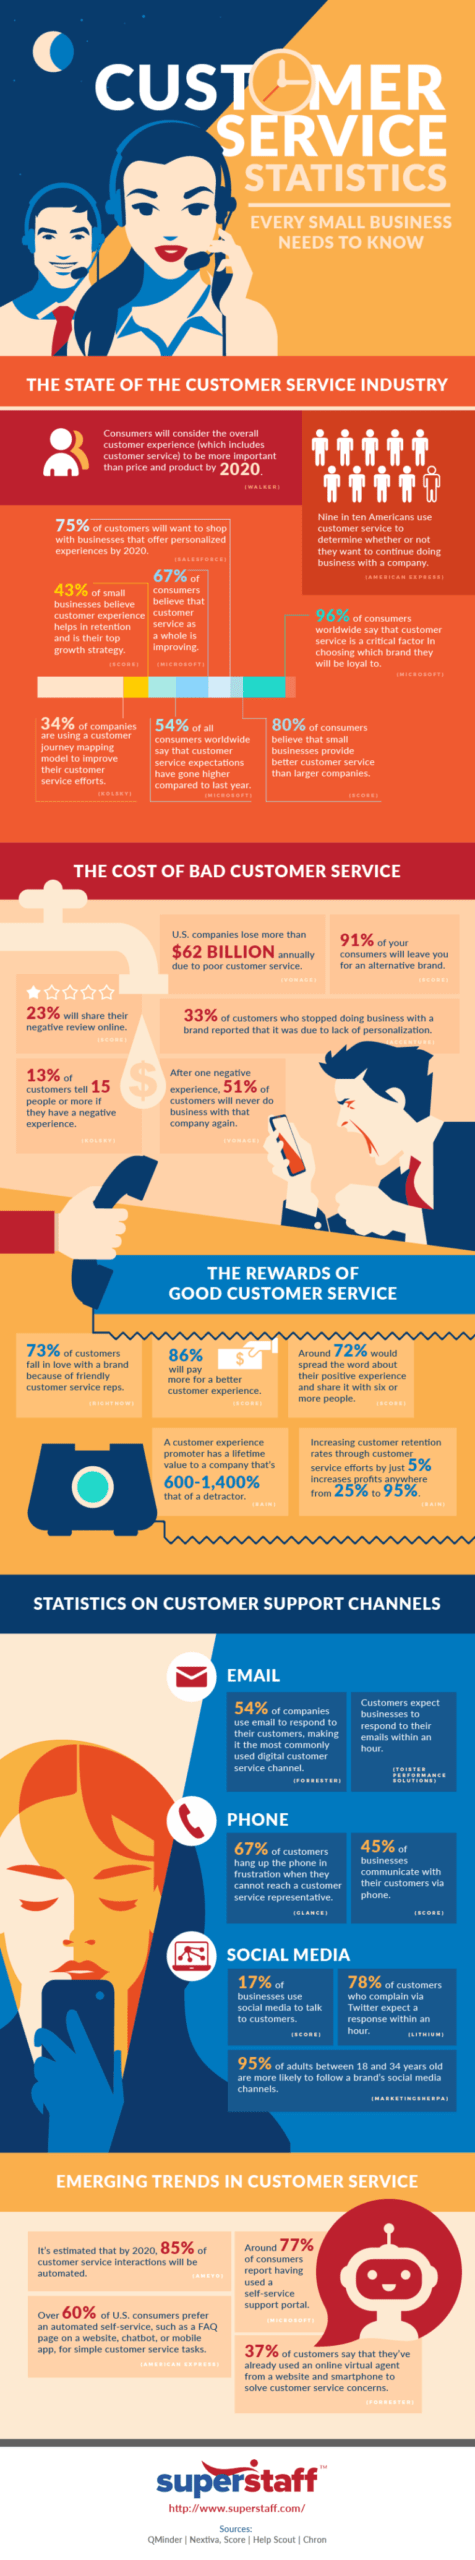 Customer Service Statistics Every Small Business Should Know